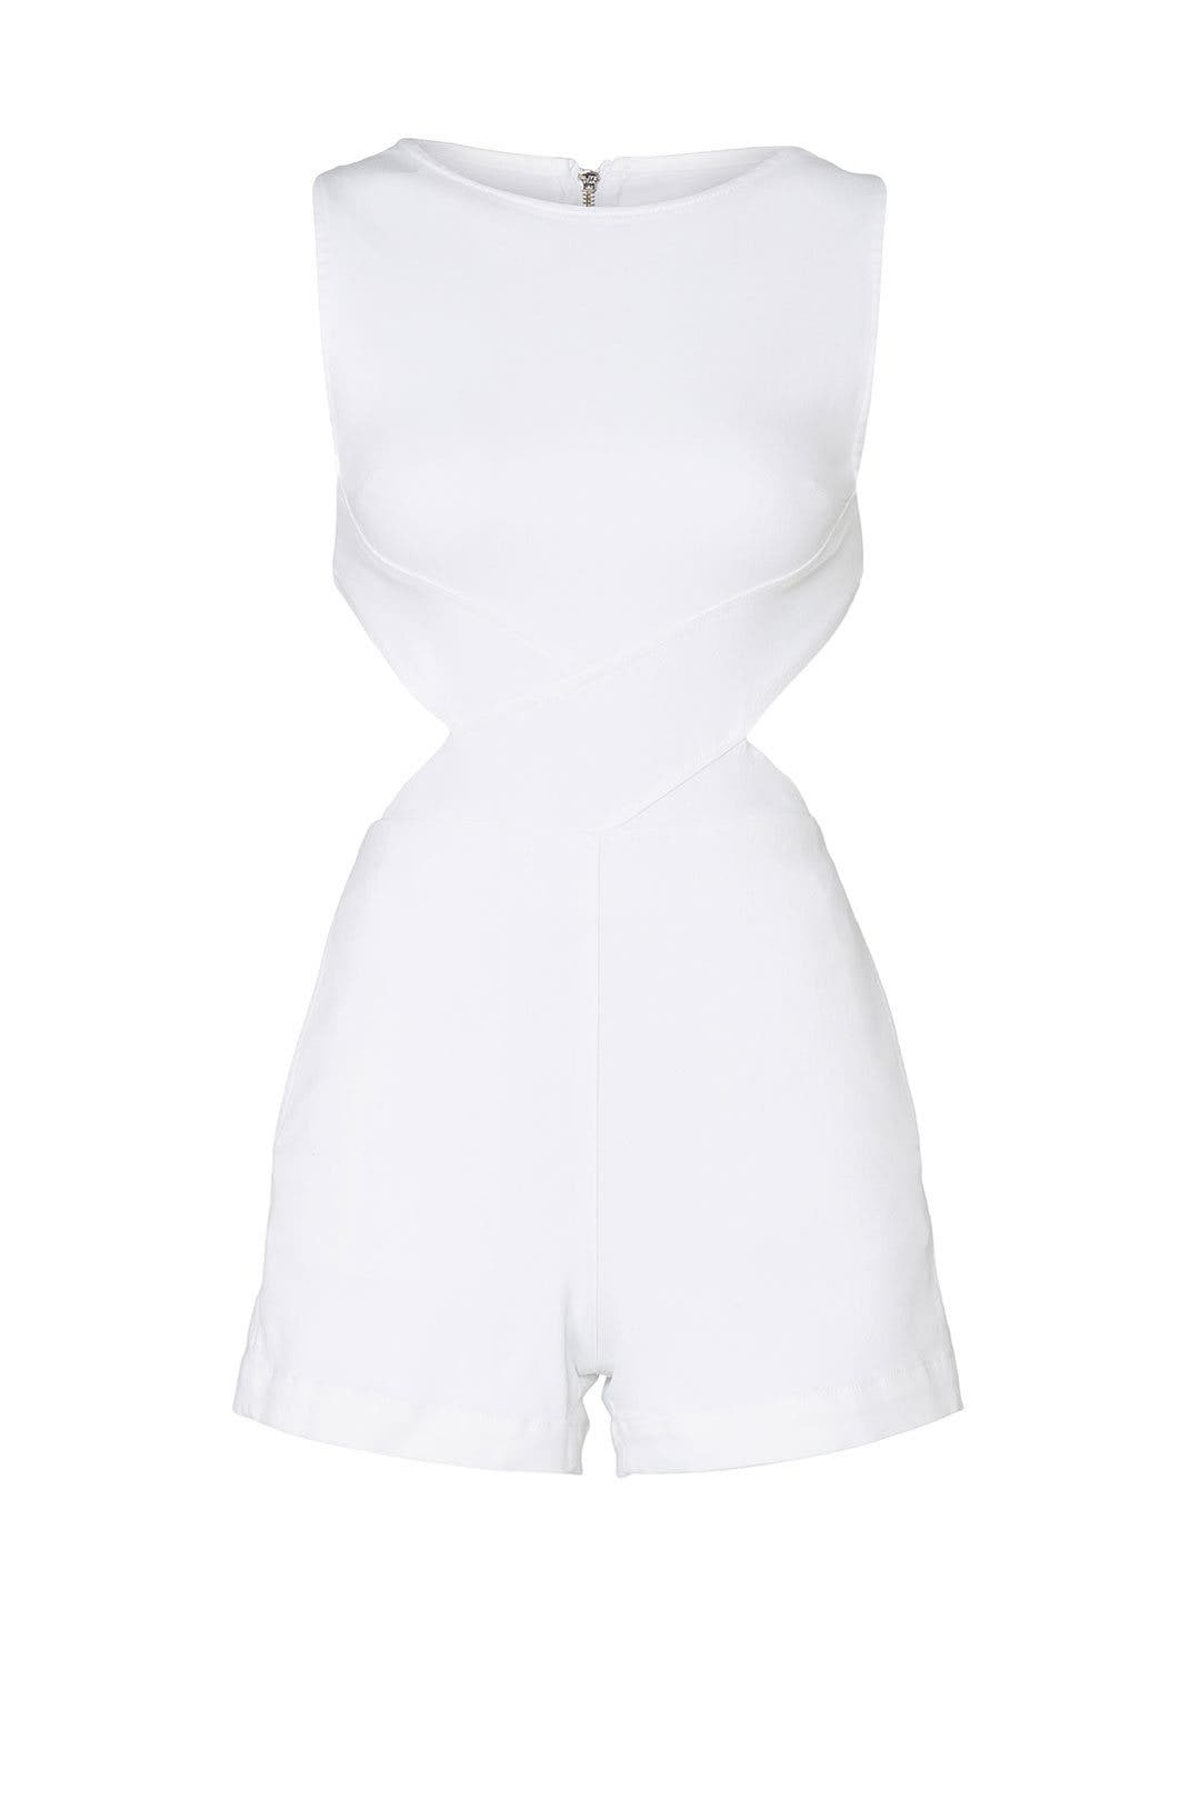 White denim Aspro  crossbody romper from 3x1, available to shop or rent via Rent The Runway.